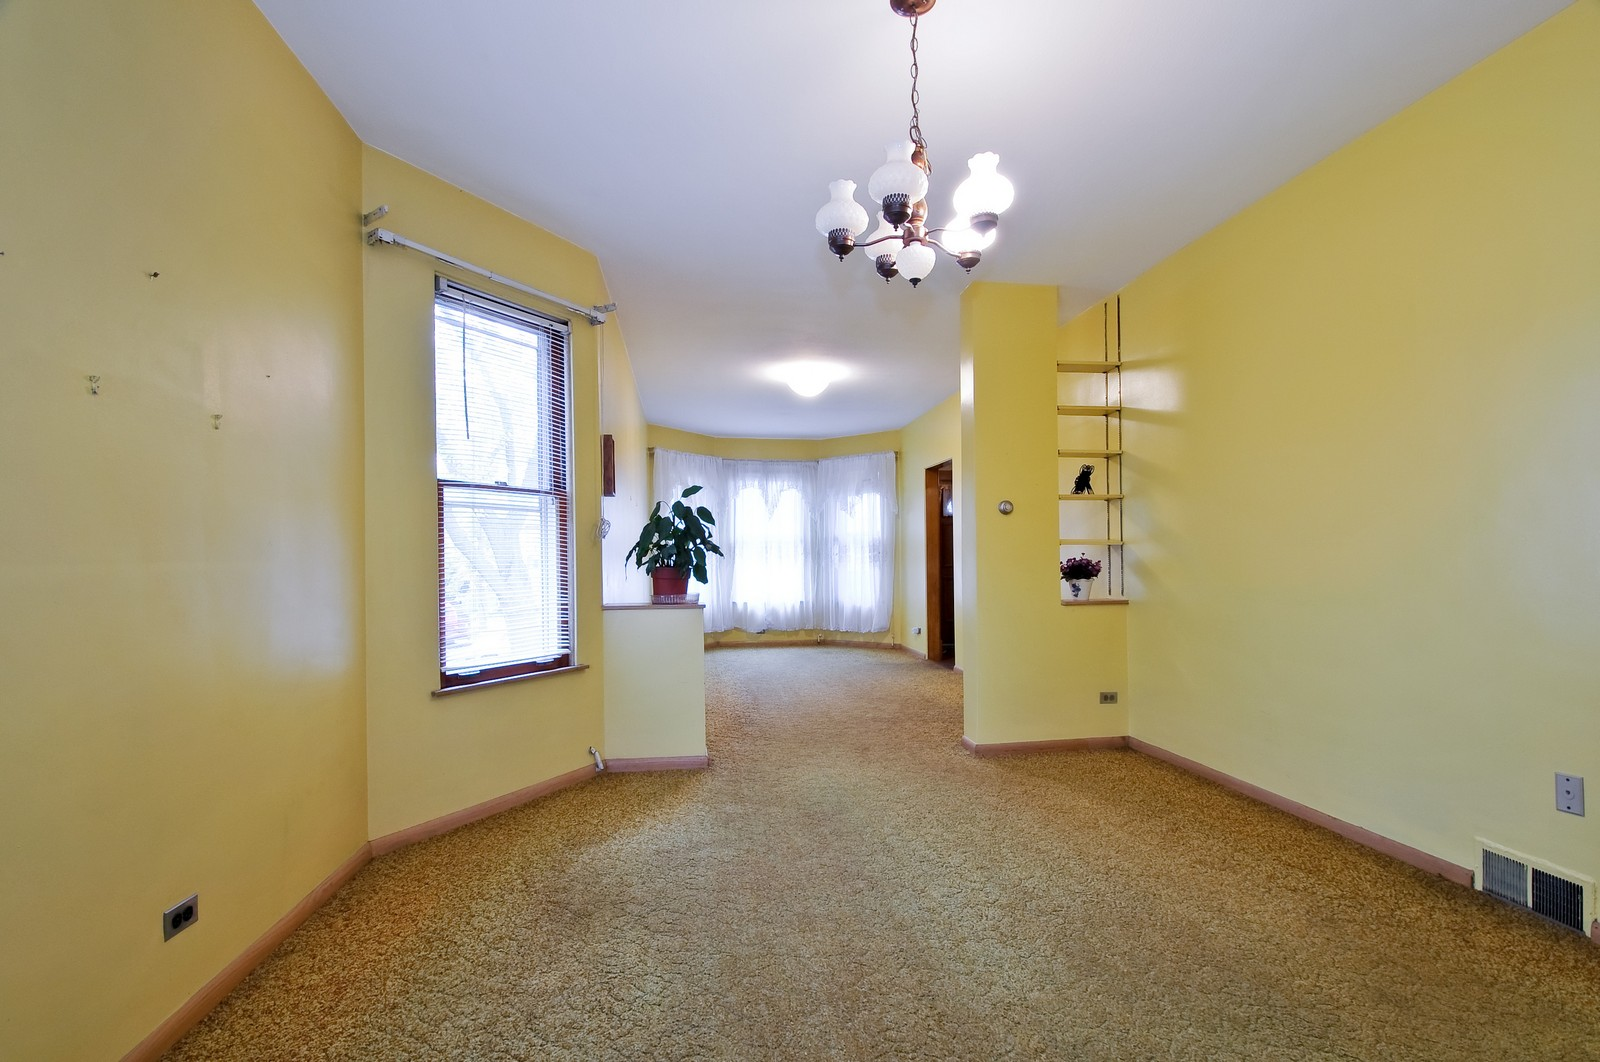 Real Estate Photography - 4435 N Avers Ave, Chicago, IL, 60625 - Living Room / Dining Room